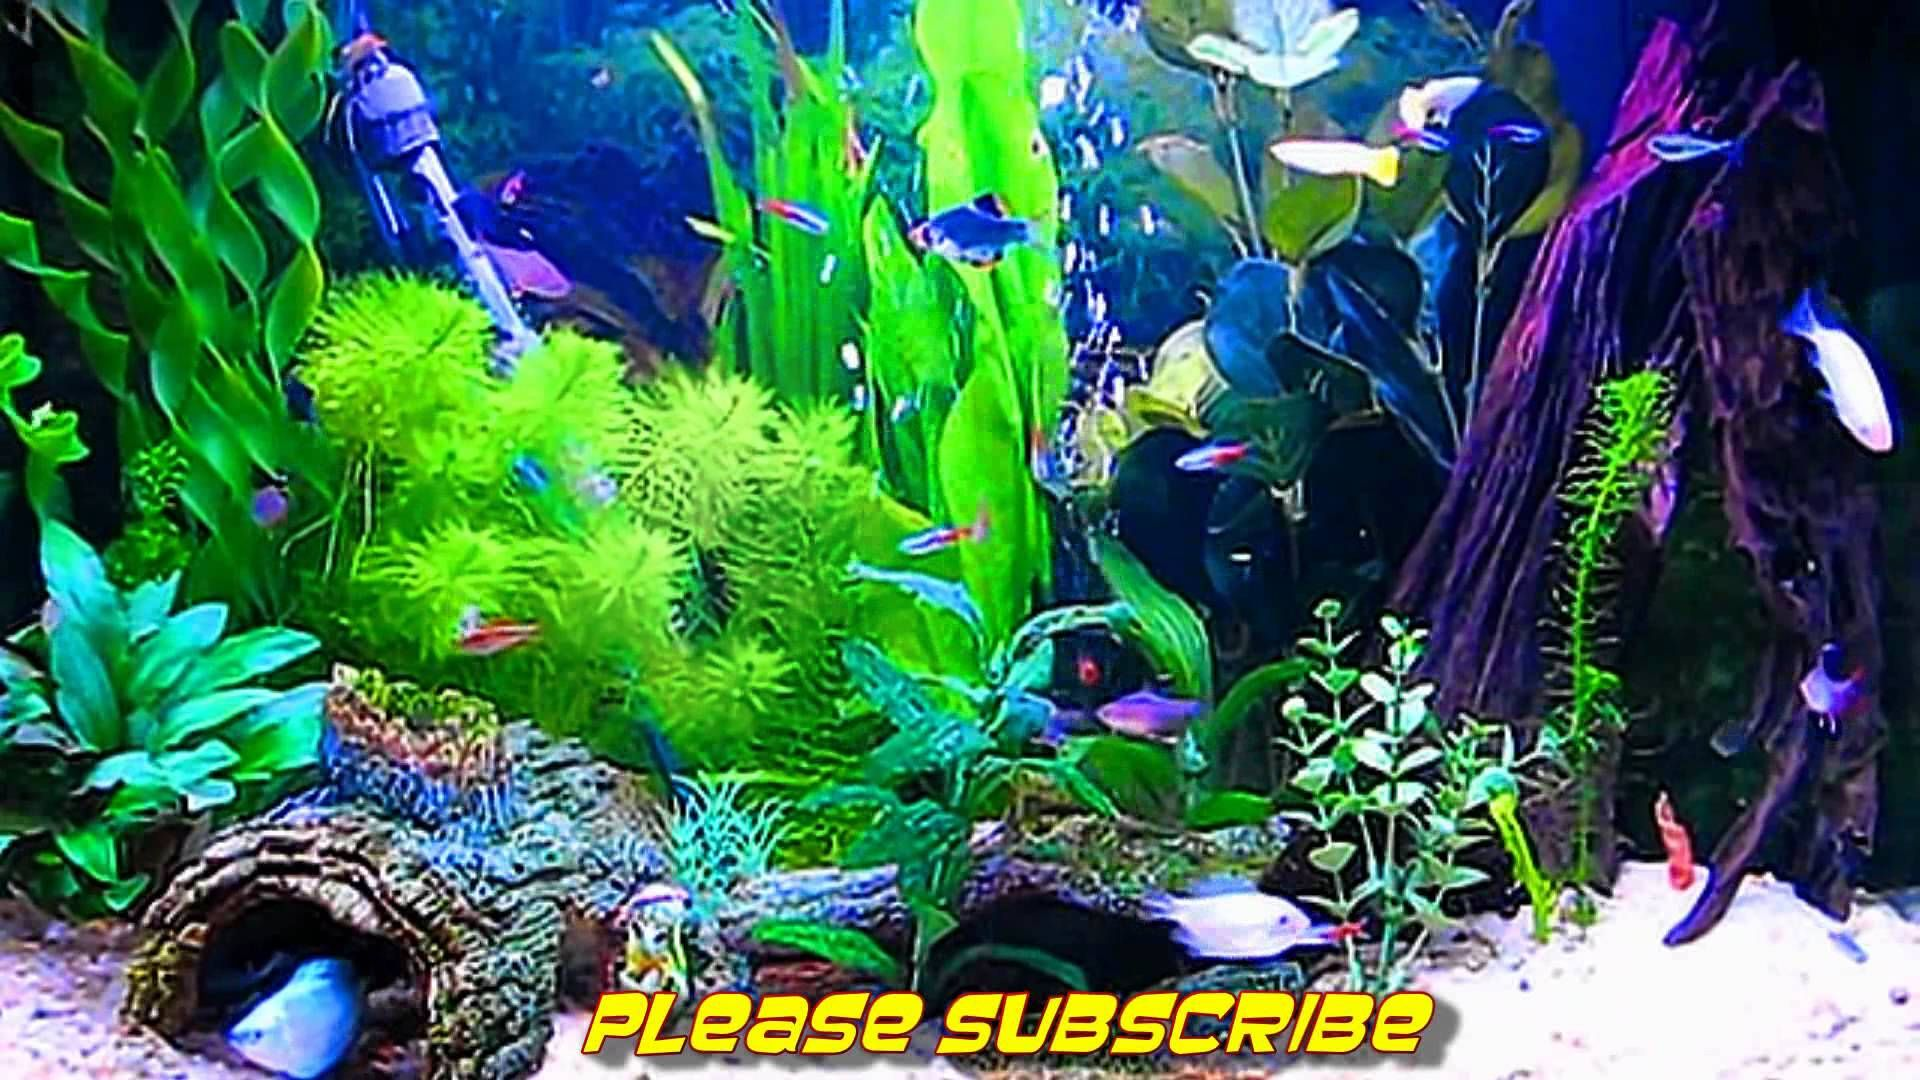 sim aquarium screensaver live wallpaper my screen savers pinterest live wallpapers and wallpaper